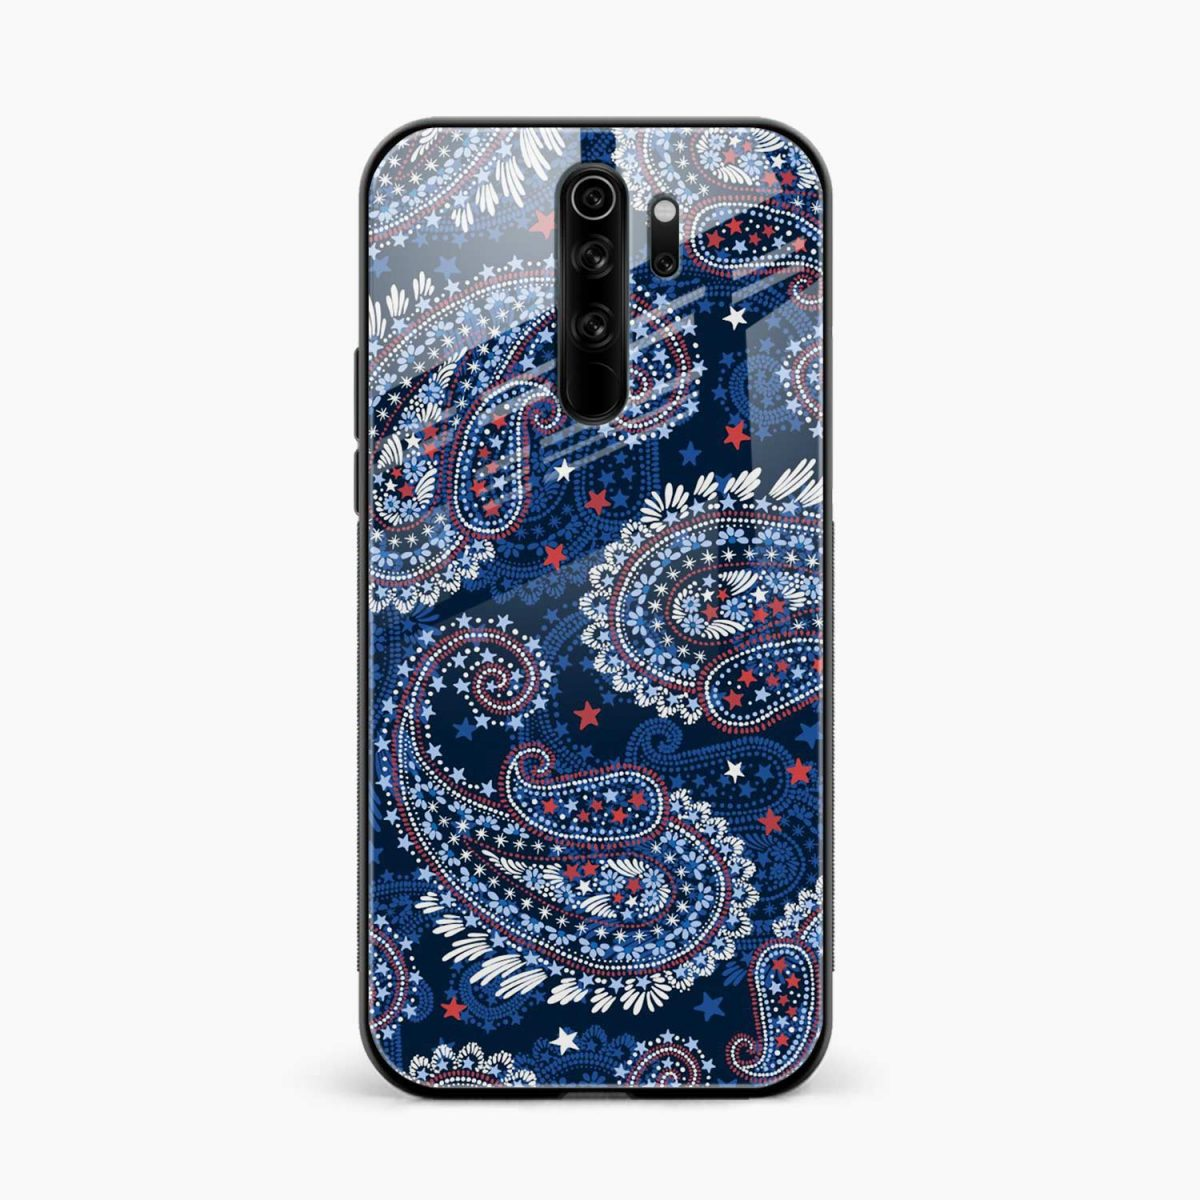 rblue colored classical pattern edmi note 8 pro back cover front view